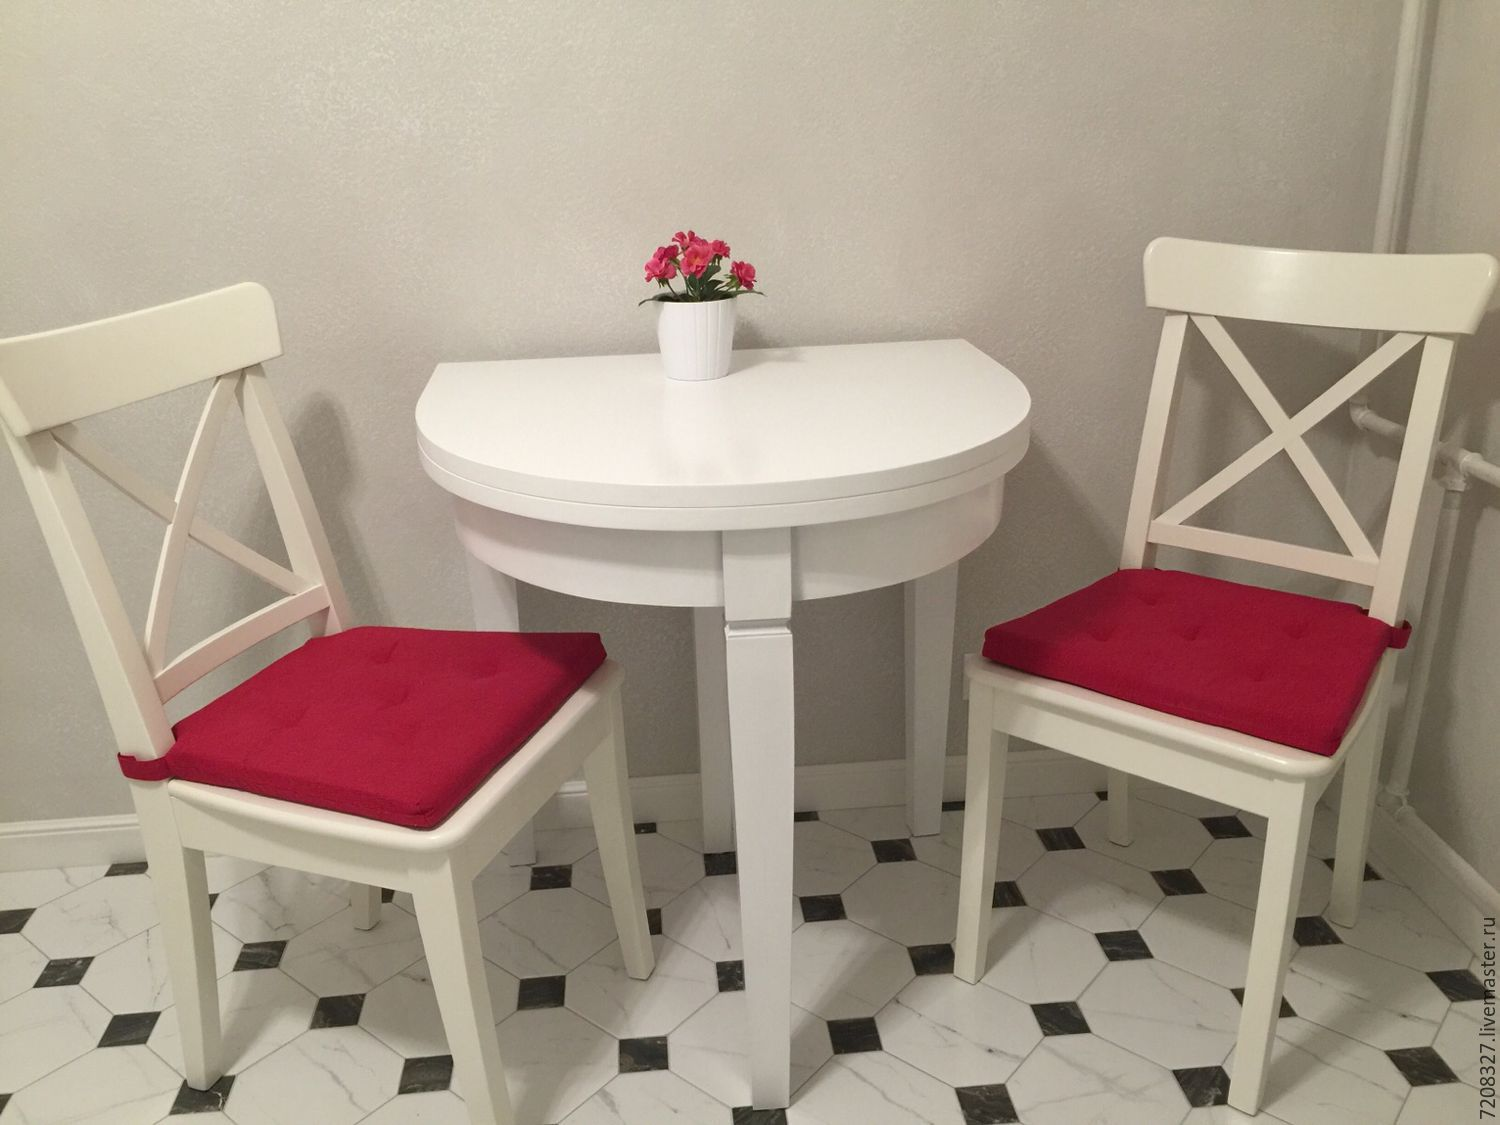 Retractable Tables buy oval folding kitchen table - dining table, white table, table-book